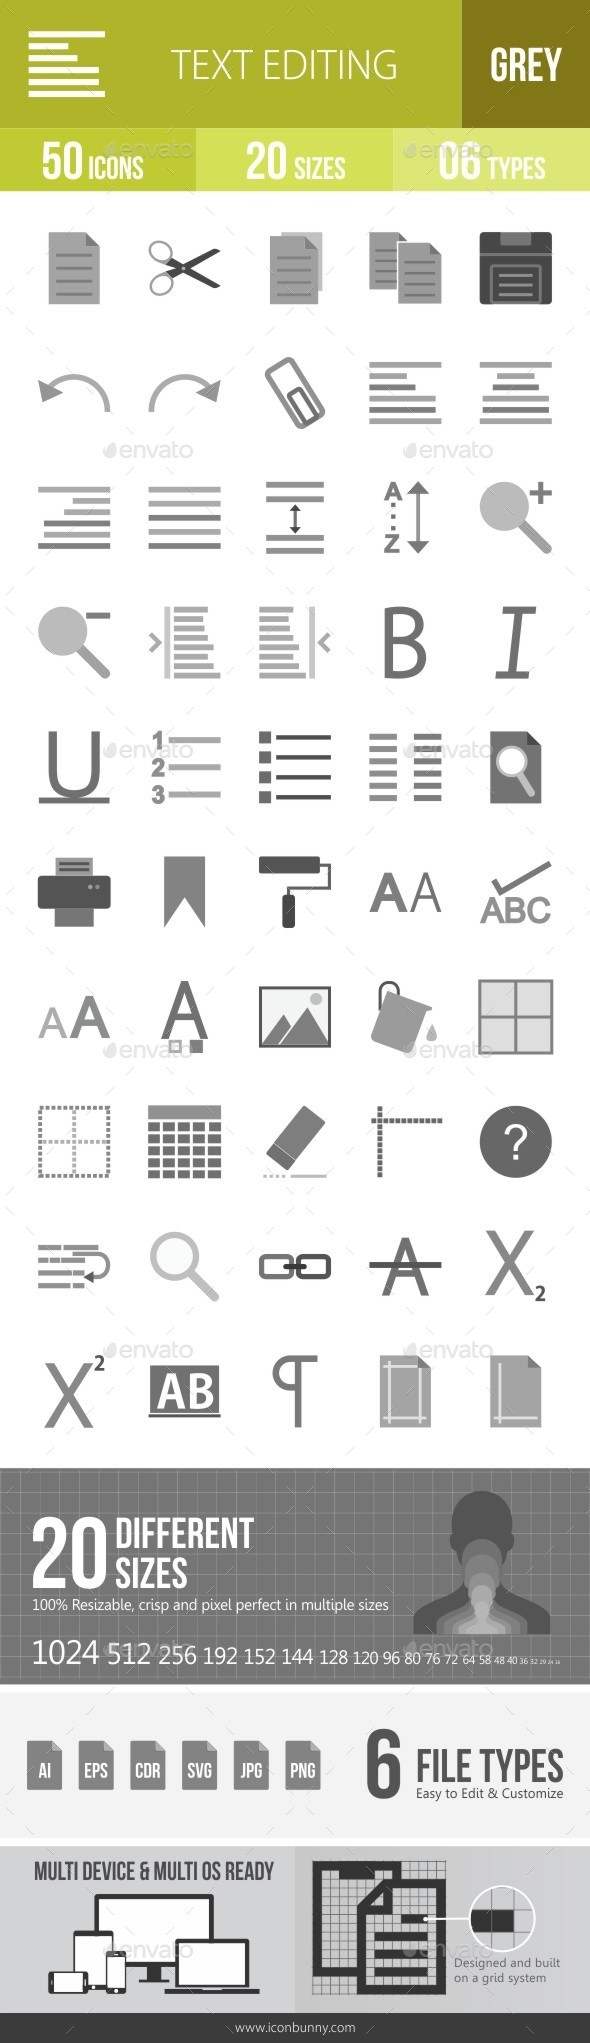 Text Editing Greyscale Icons - Icons